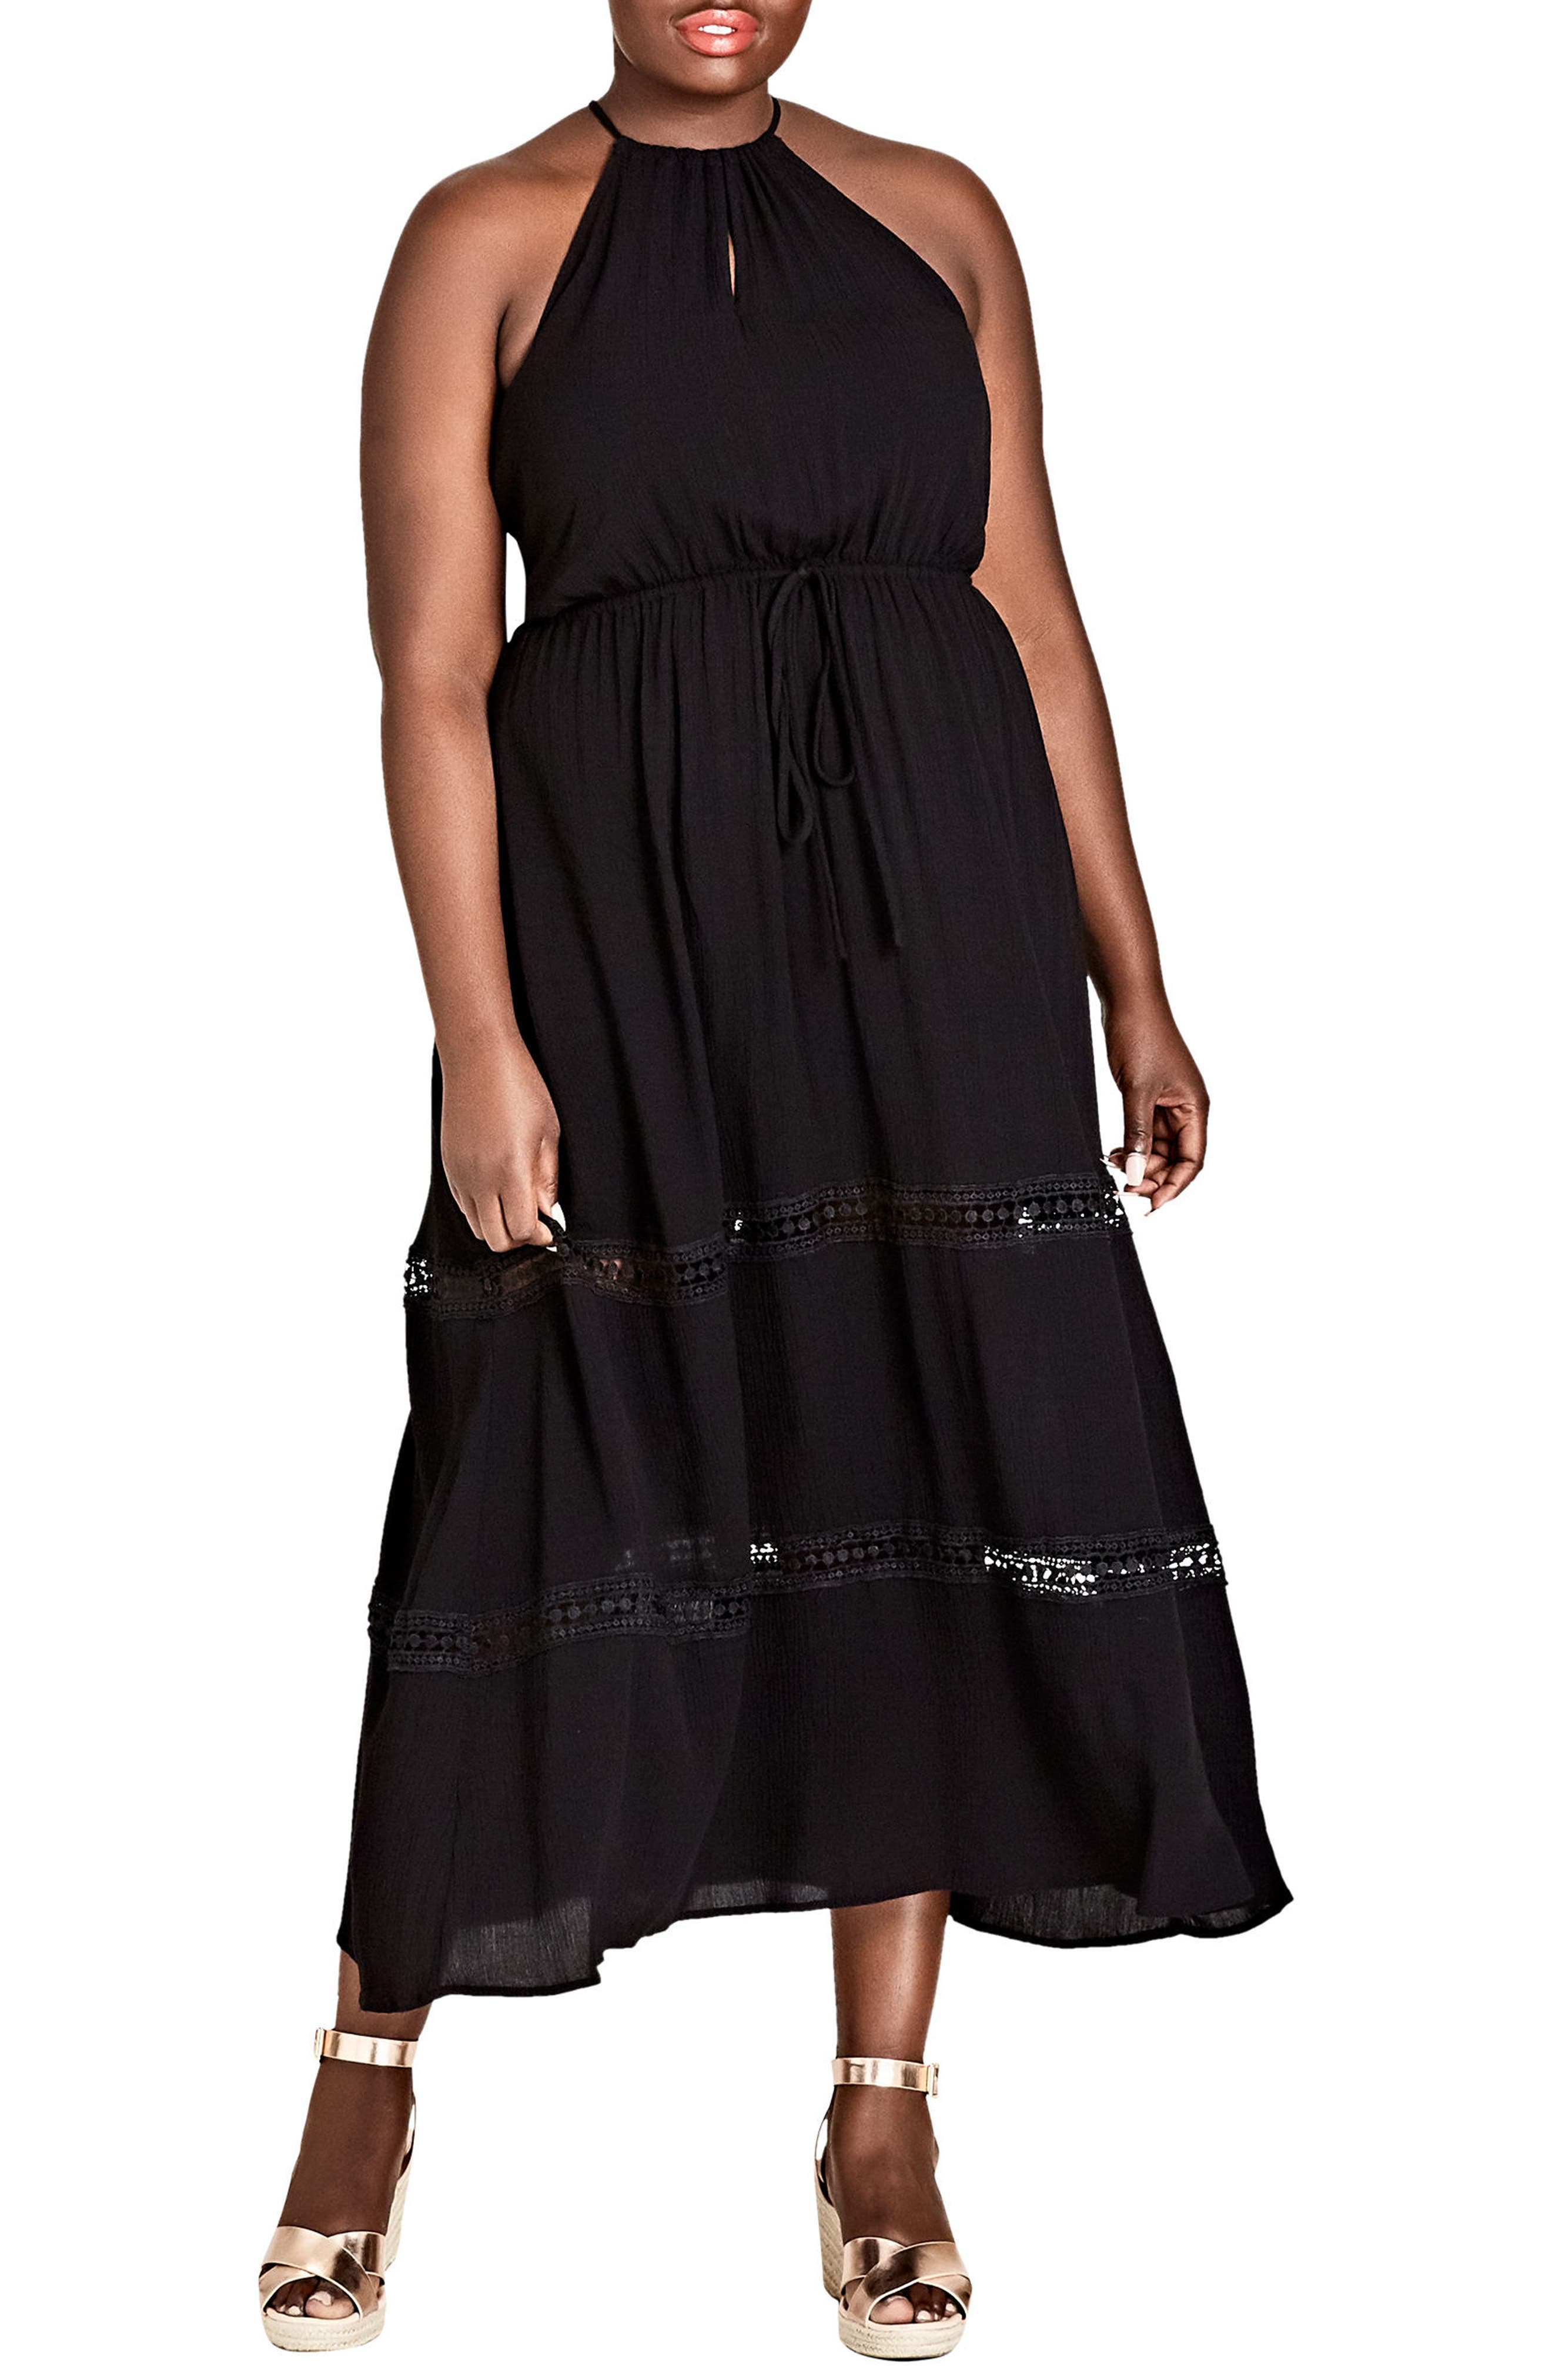 plus size women's city chic summer holiday maxi dress